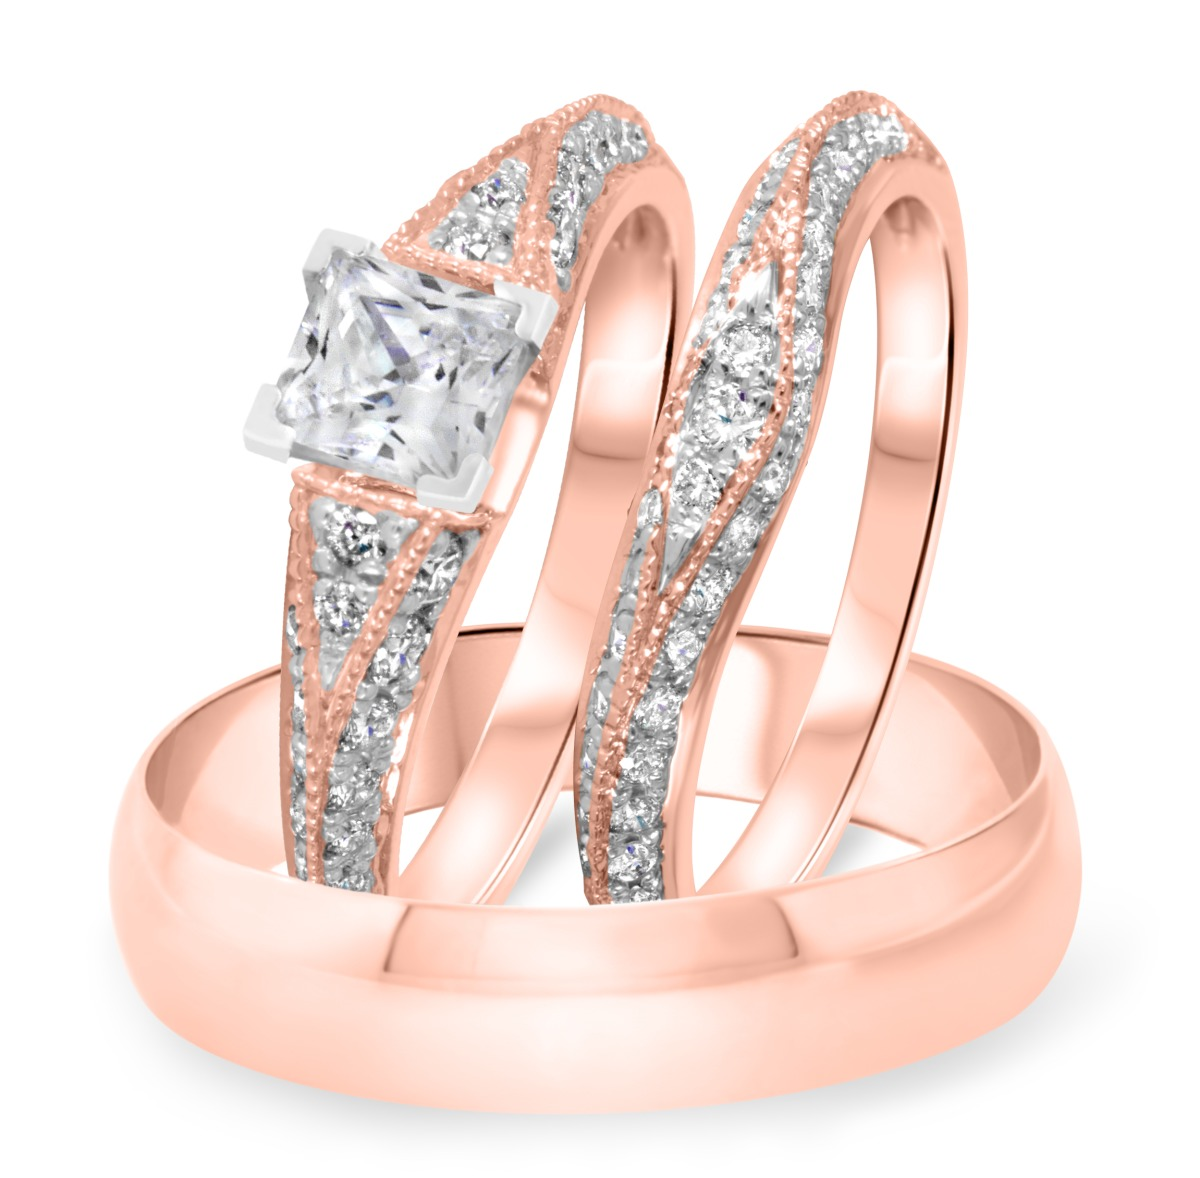 1 1/2 CT. T.W. Diamond Ladies Engagement Ring, Wedding Band, Men's Wedding Band Matching Set 14K Rose Gold